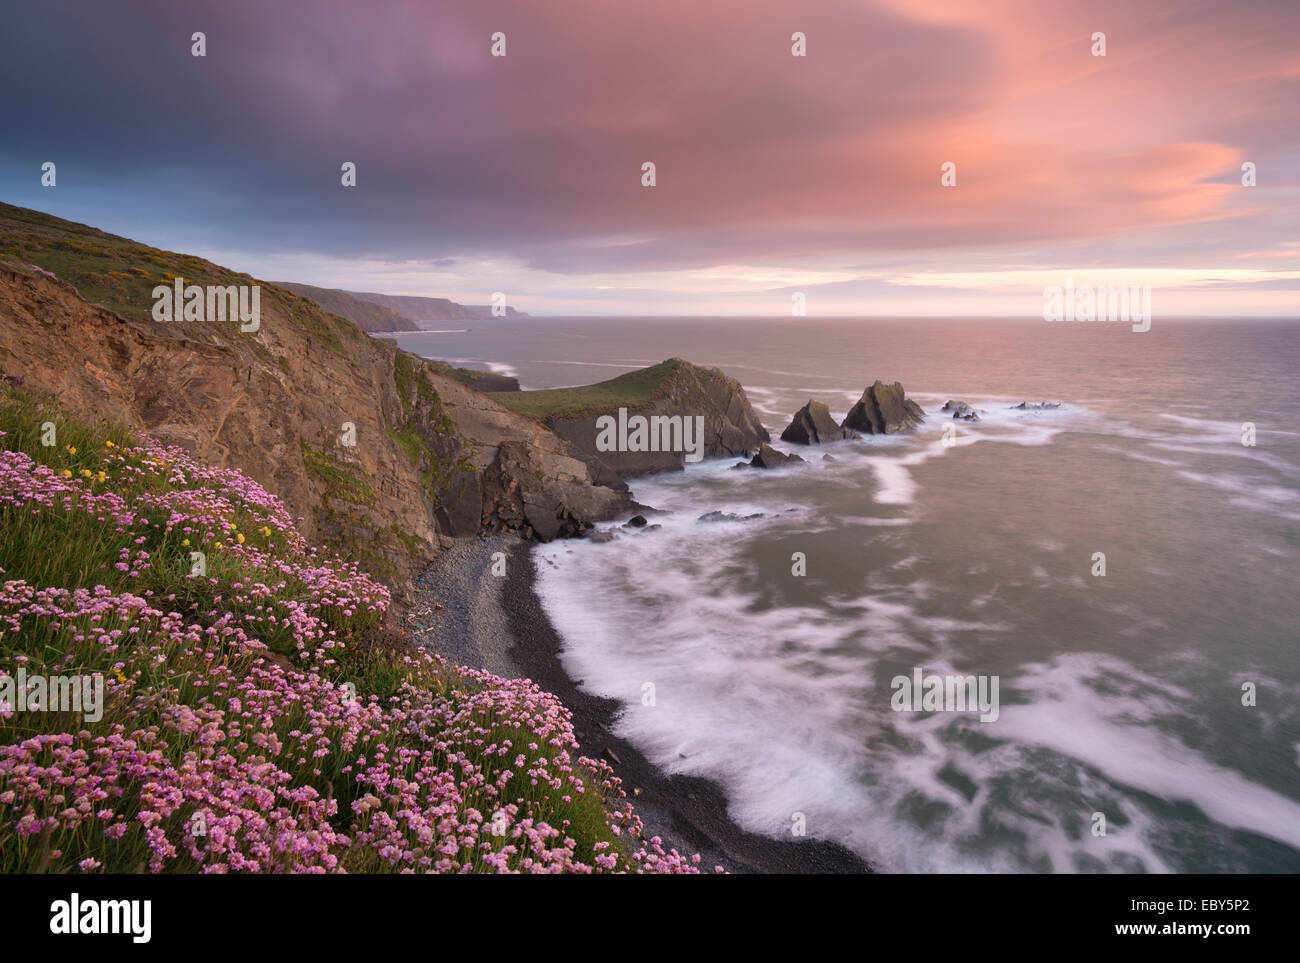 Sea Pink wildflowers flowering on the clifftops at Hartland Quay, looking towards Screda Point, Devon, England. - Stock Image